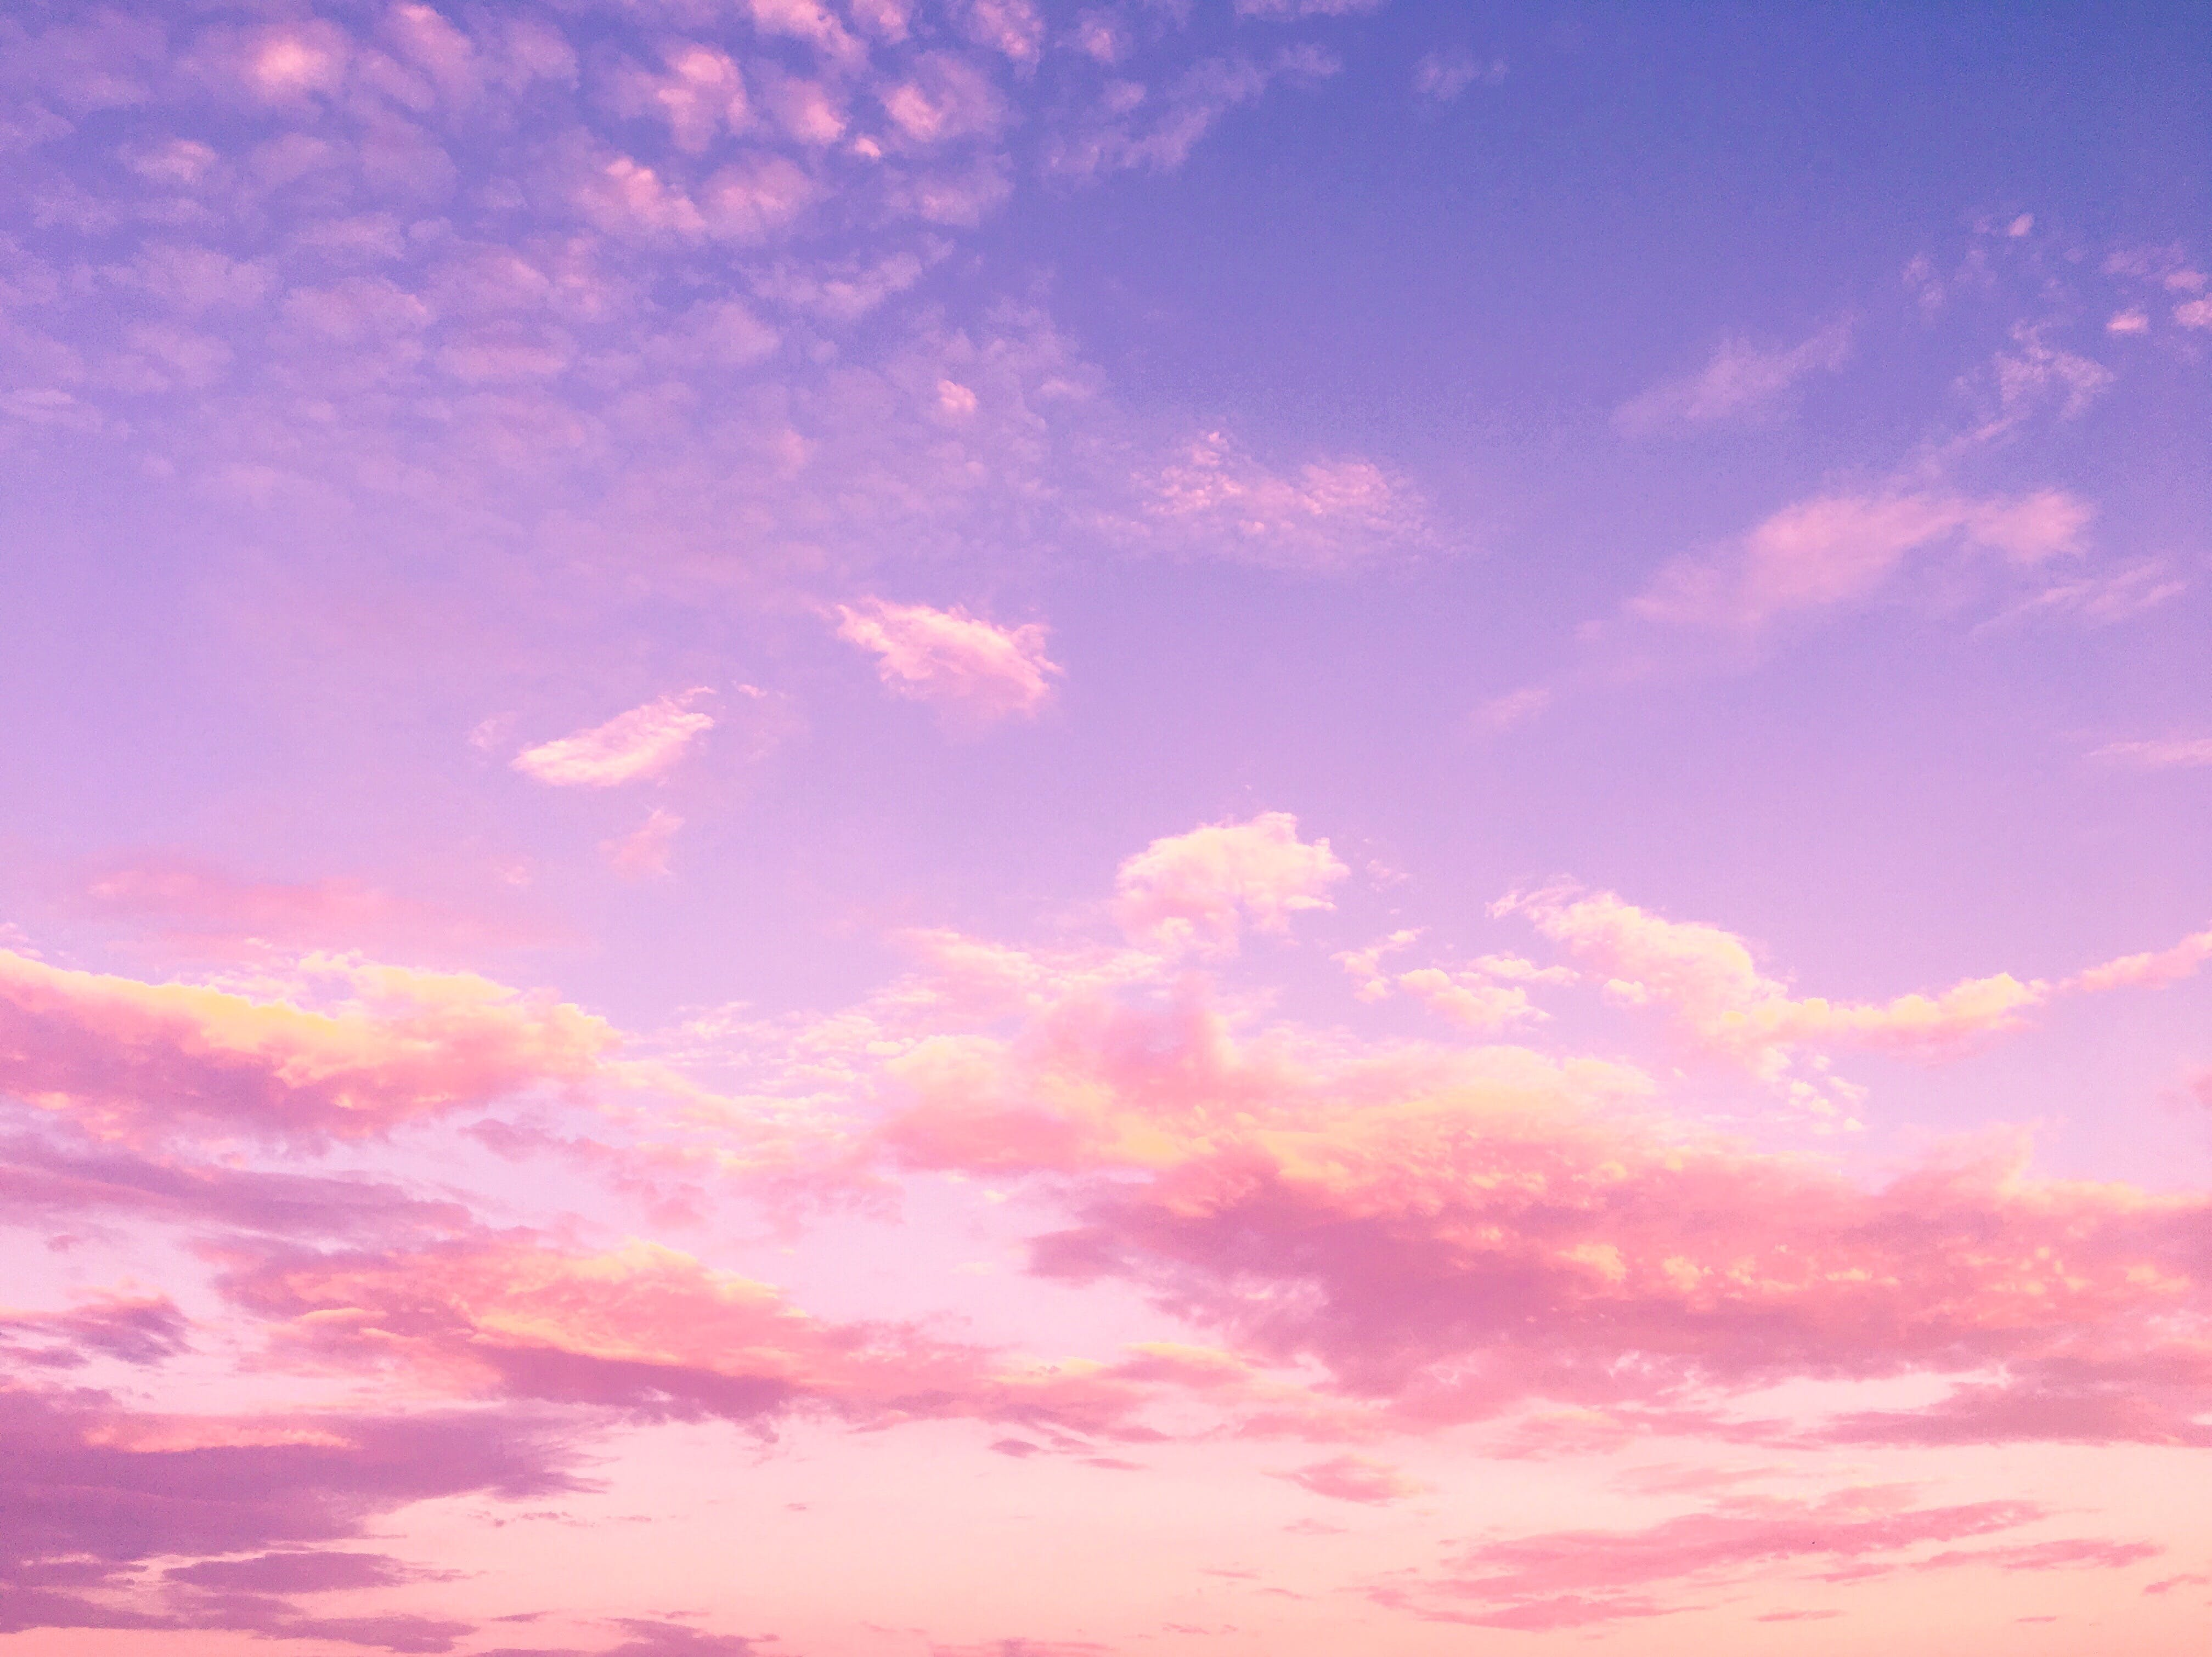 Free stock photo of sky, sunset, clouds, weather